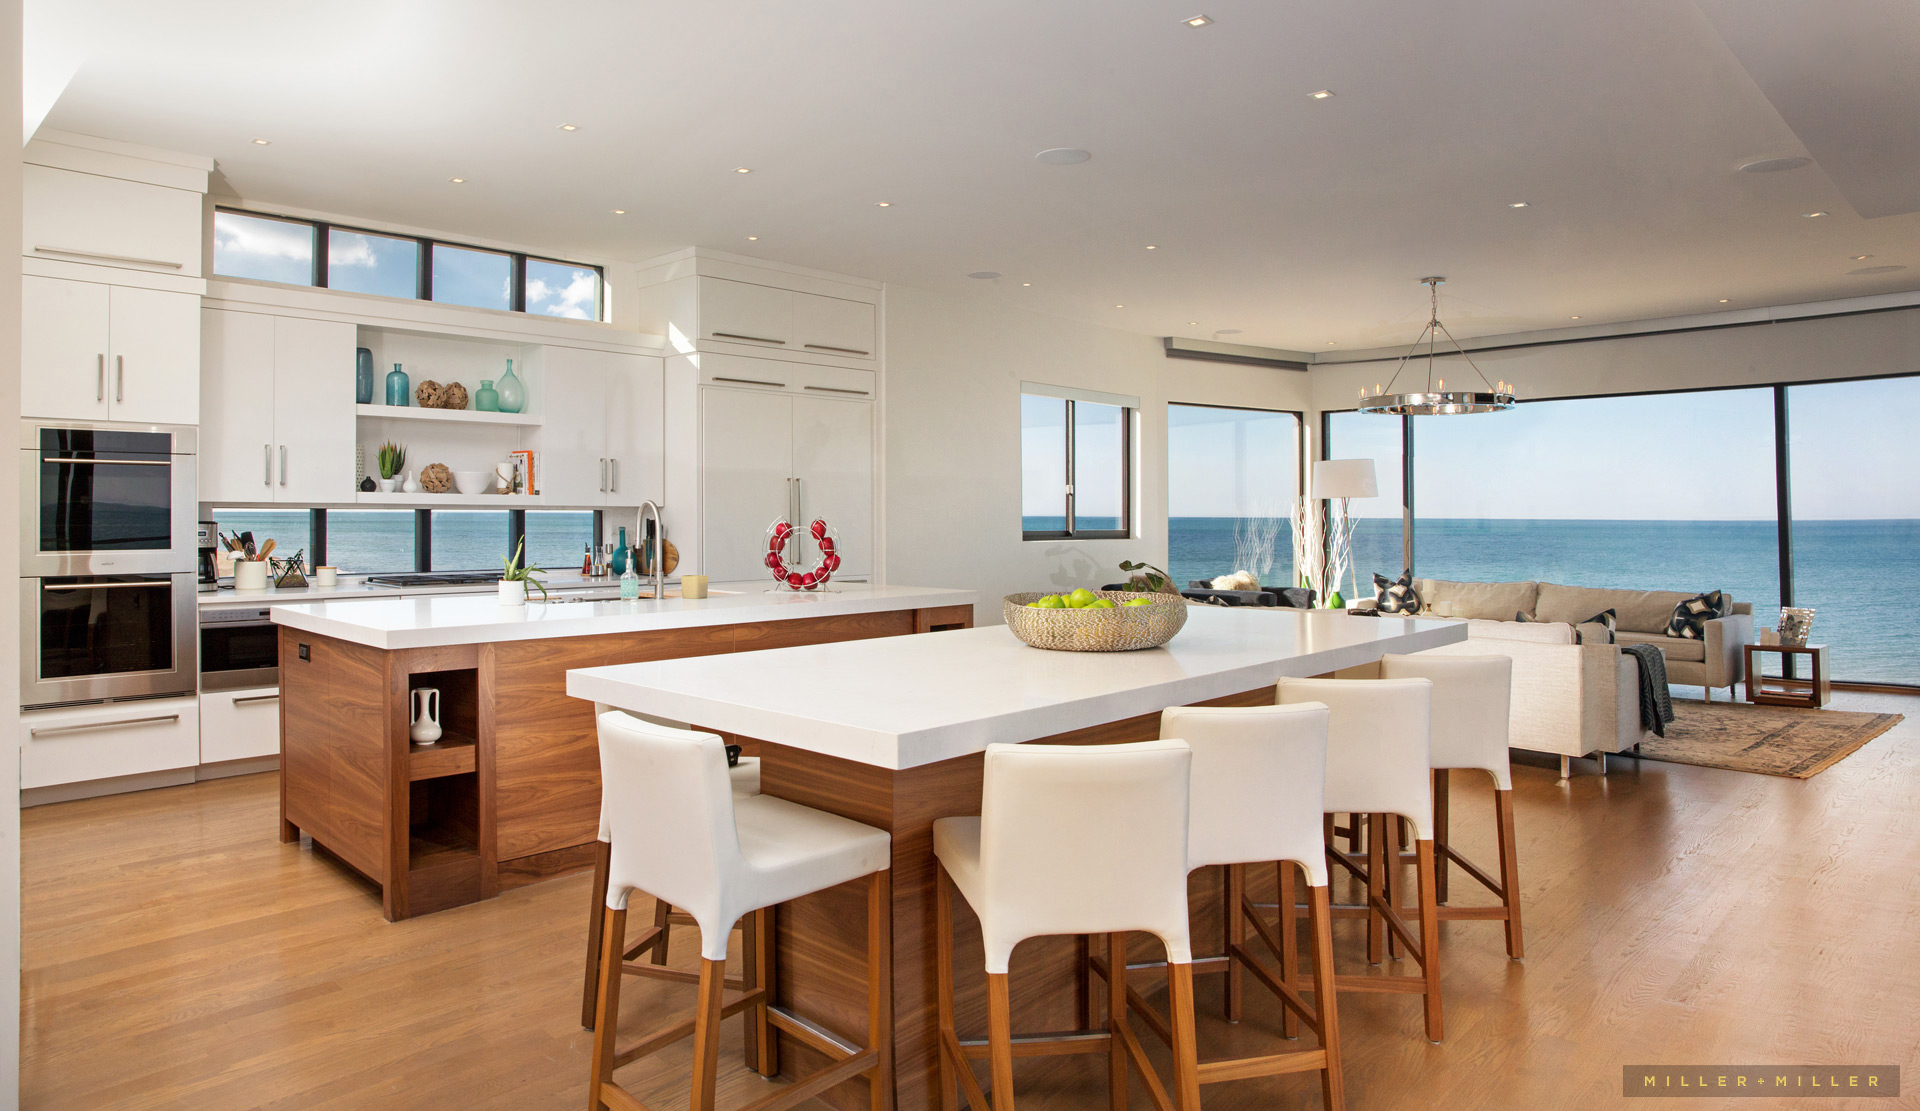 modern-kitchen-waterfront-home-lake-michigan